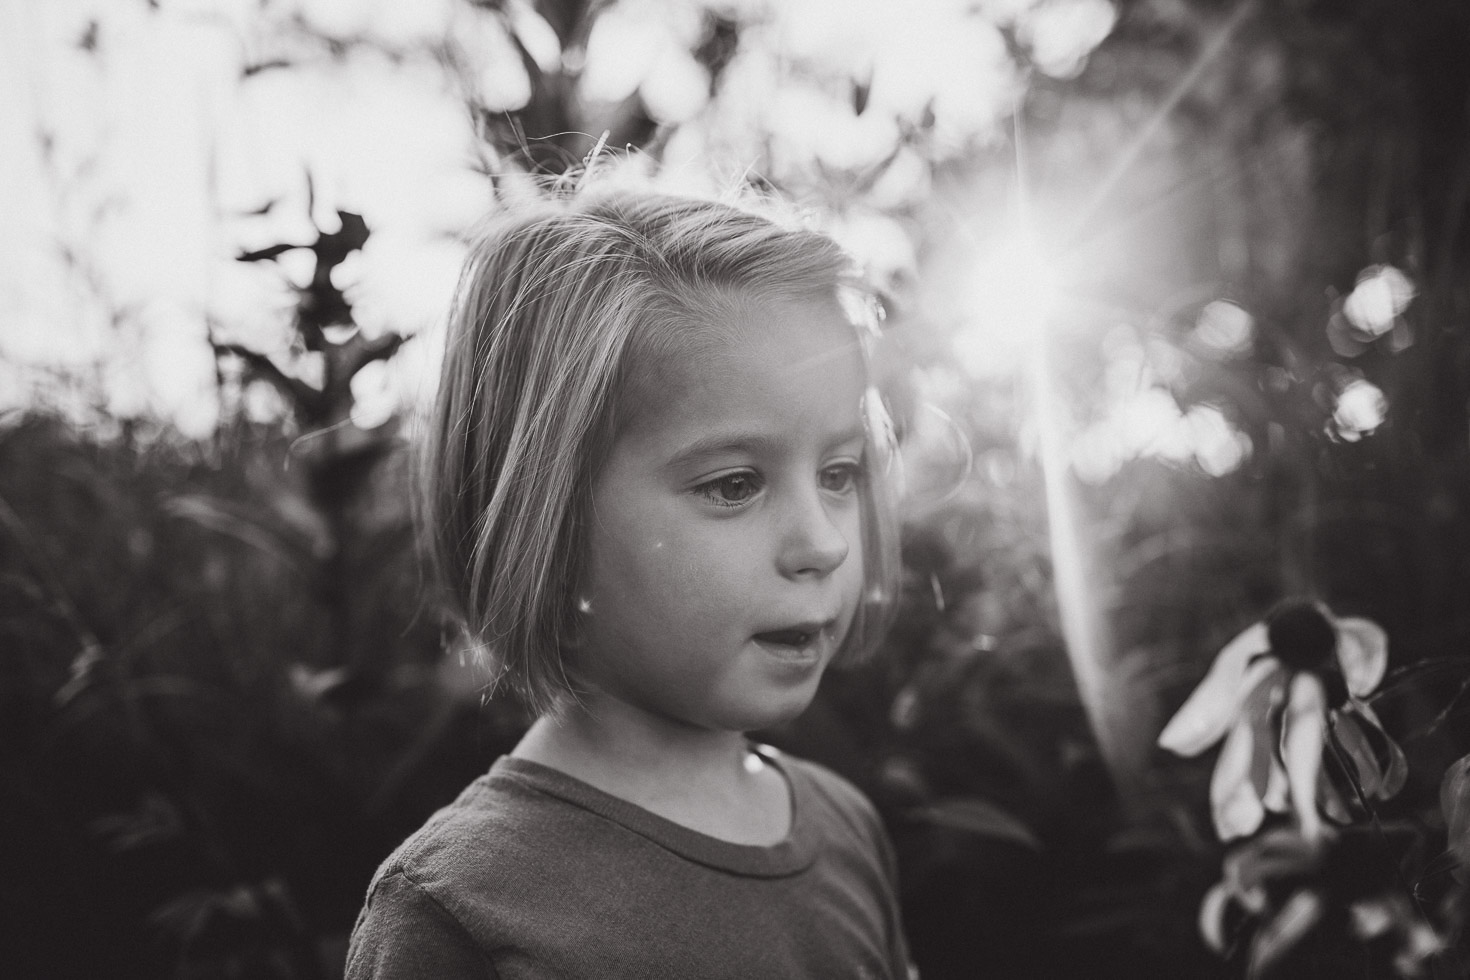 girl admiring flowers in field, with sun flare behind, black and white